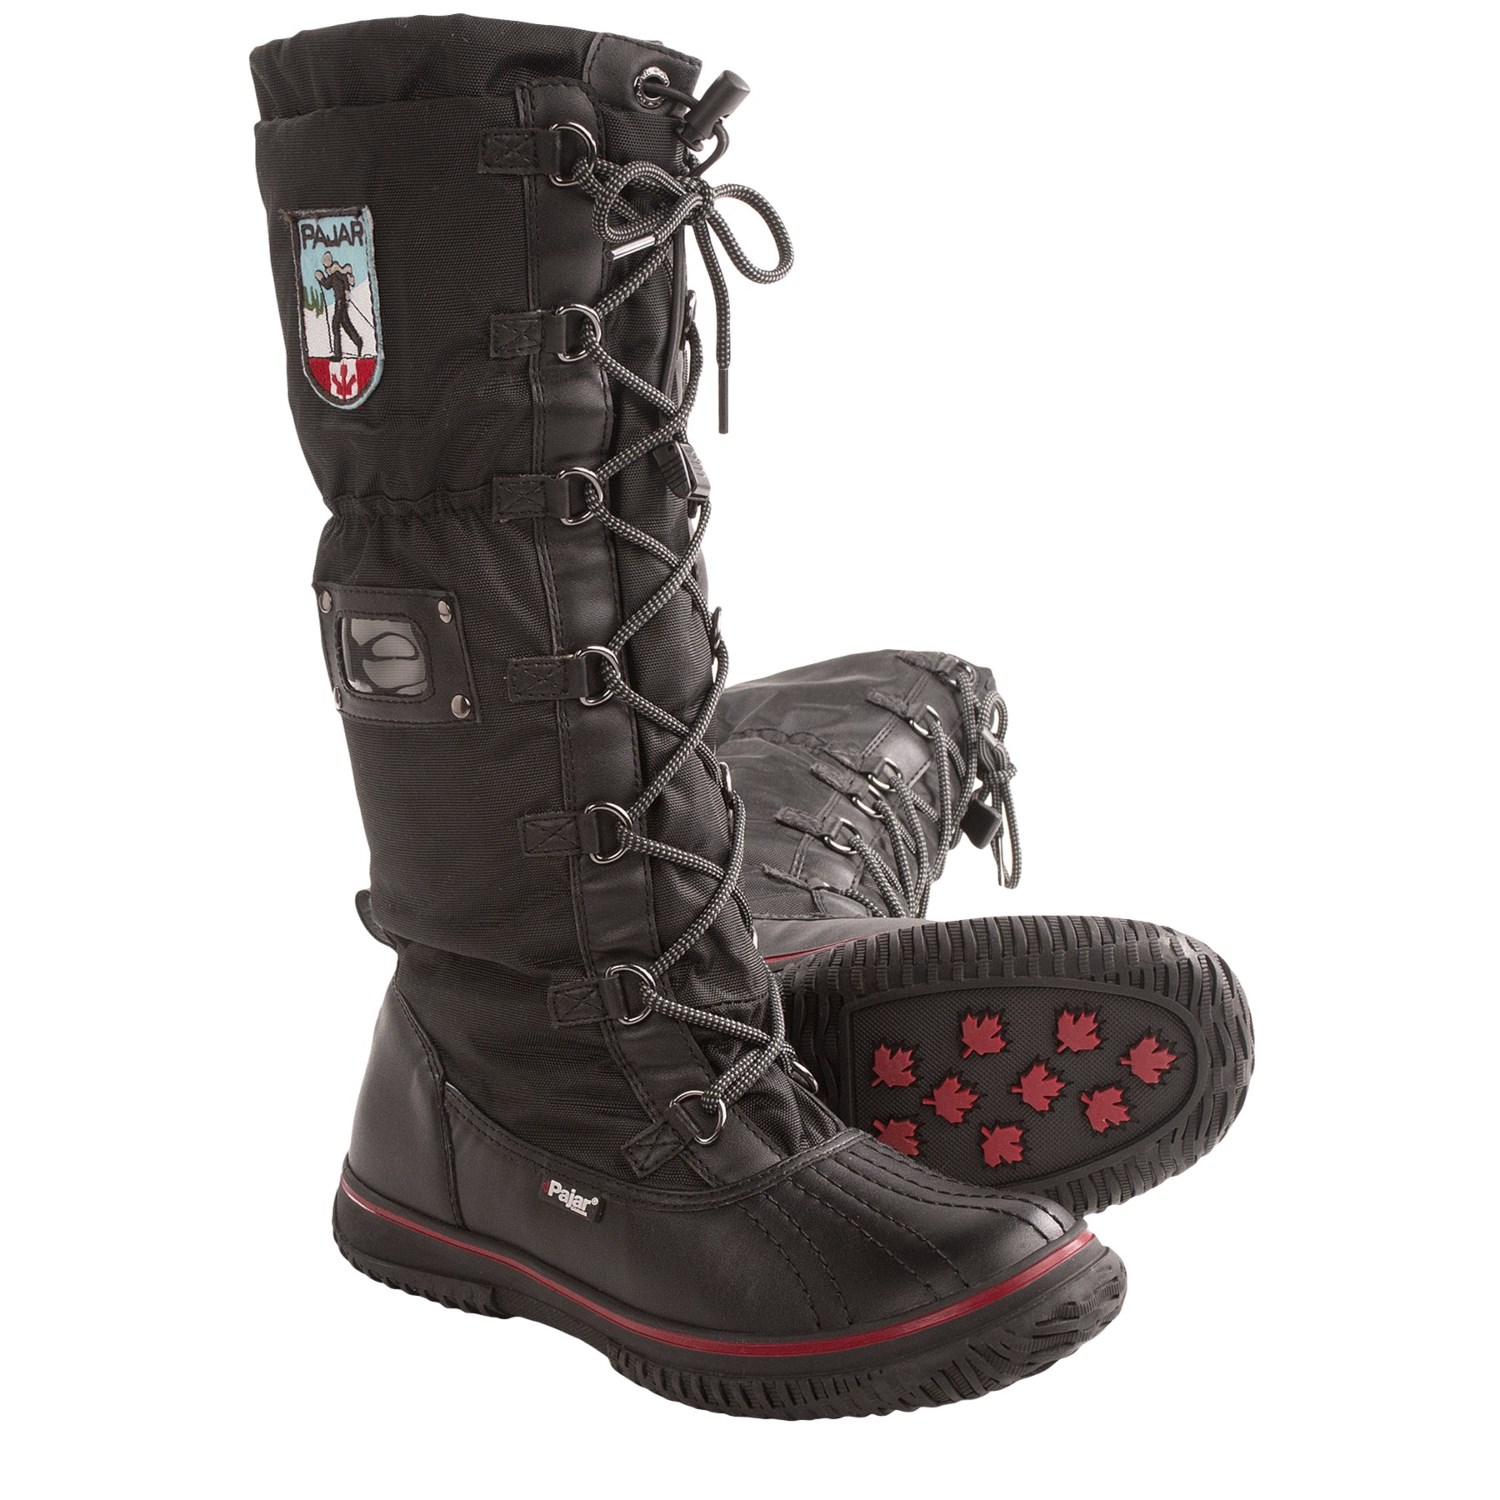 Winter Snow Boots Womens j2w1aIAN